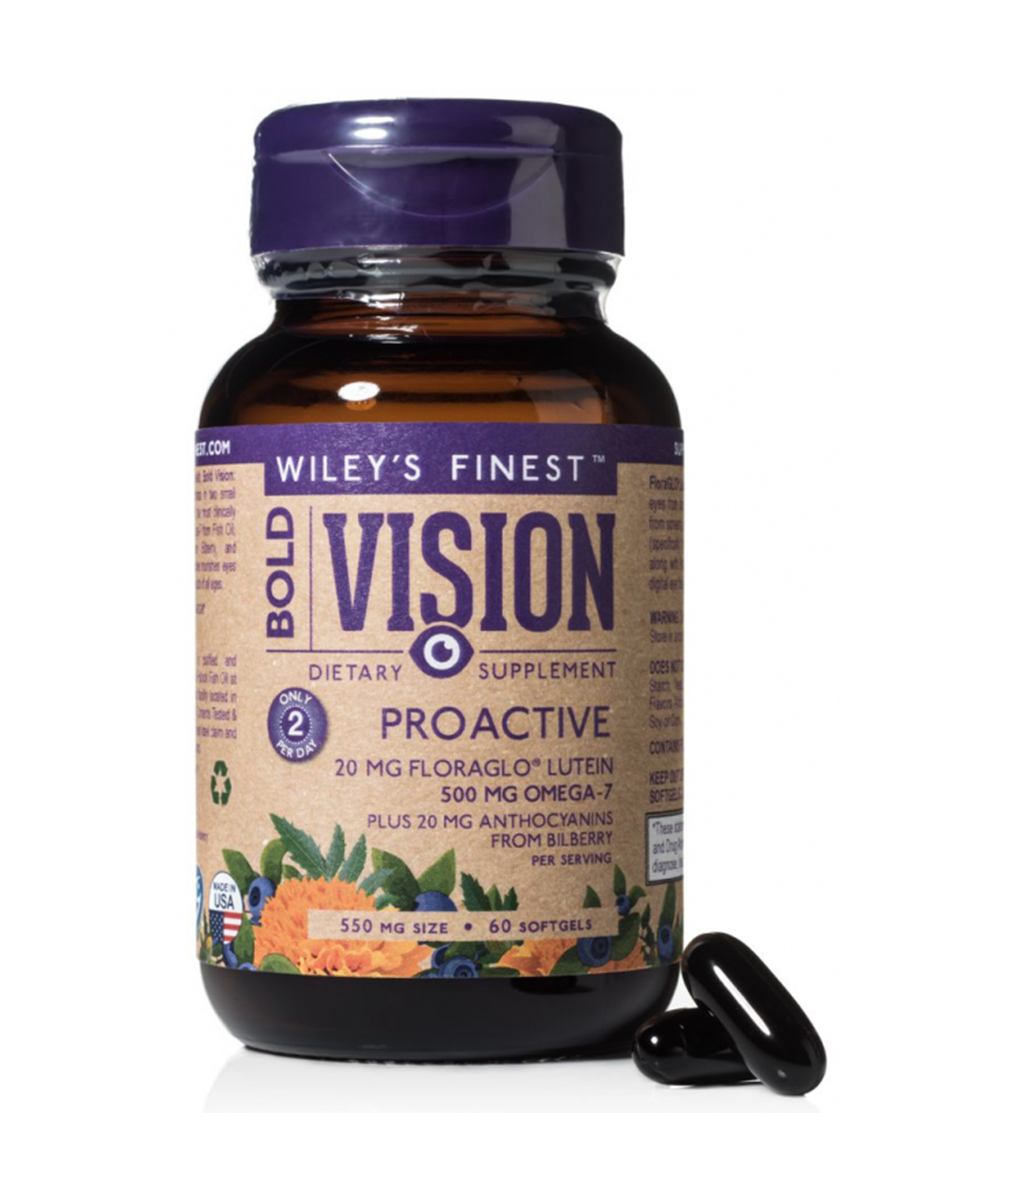 wiley's finest bold vision proactive wild alaskan fish